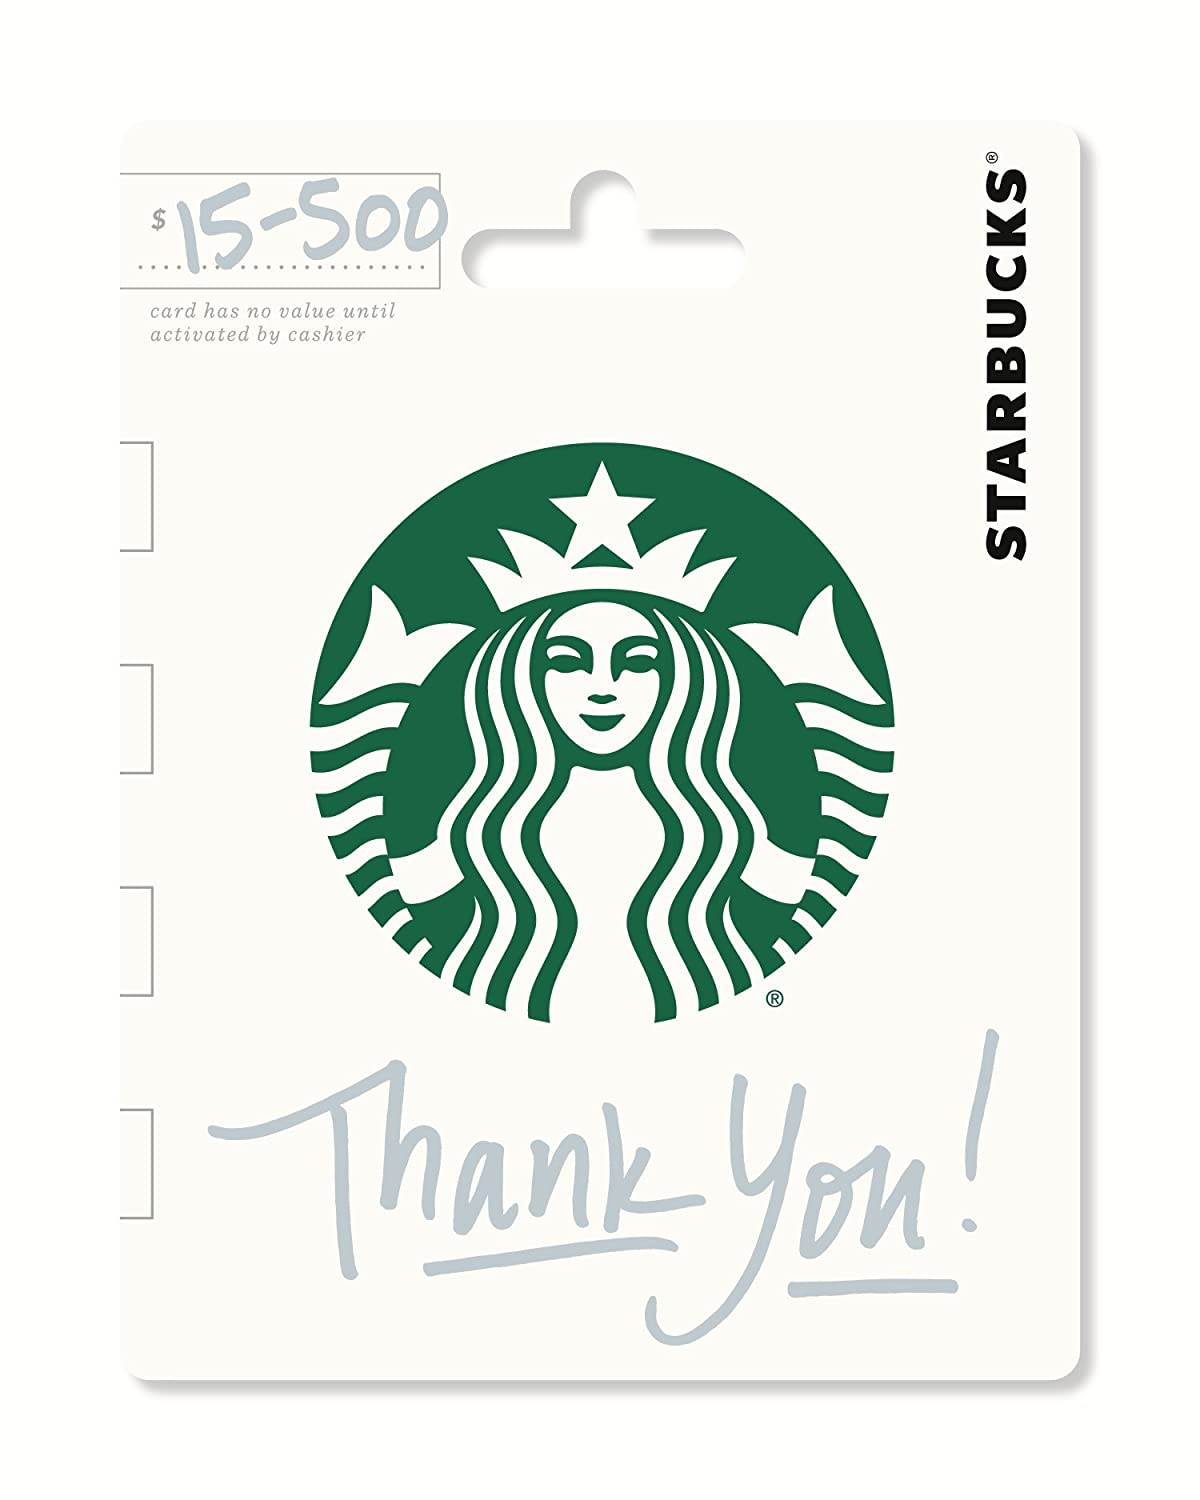 Amazon.com: Starbucks Happy Birthday Gift Card $25: Gift Cards